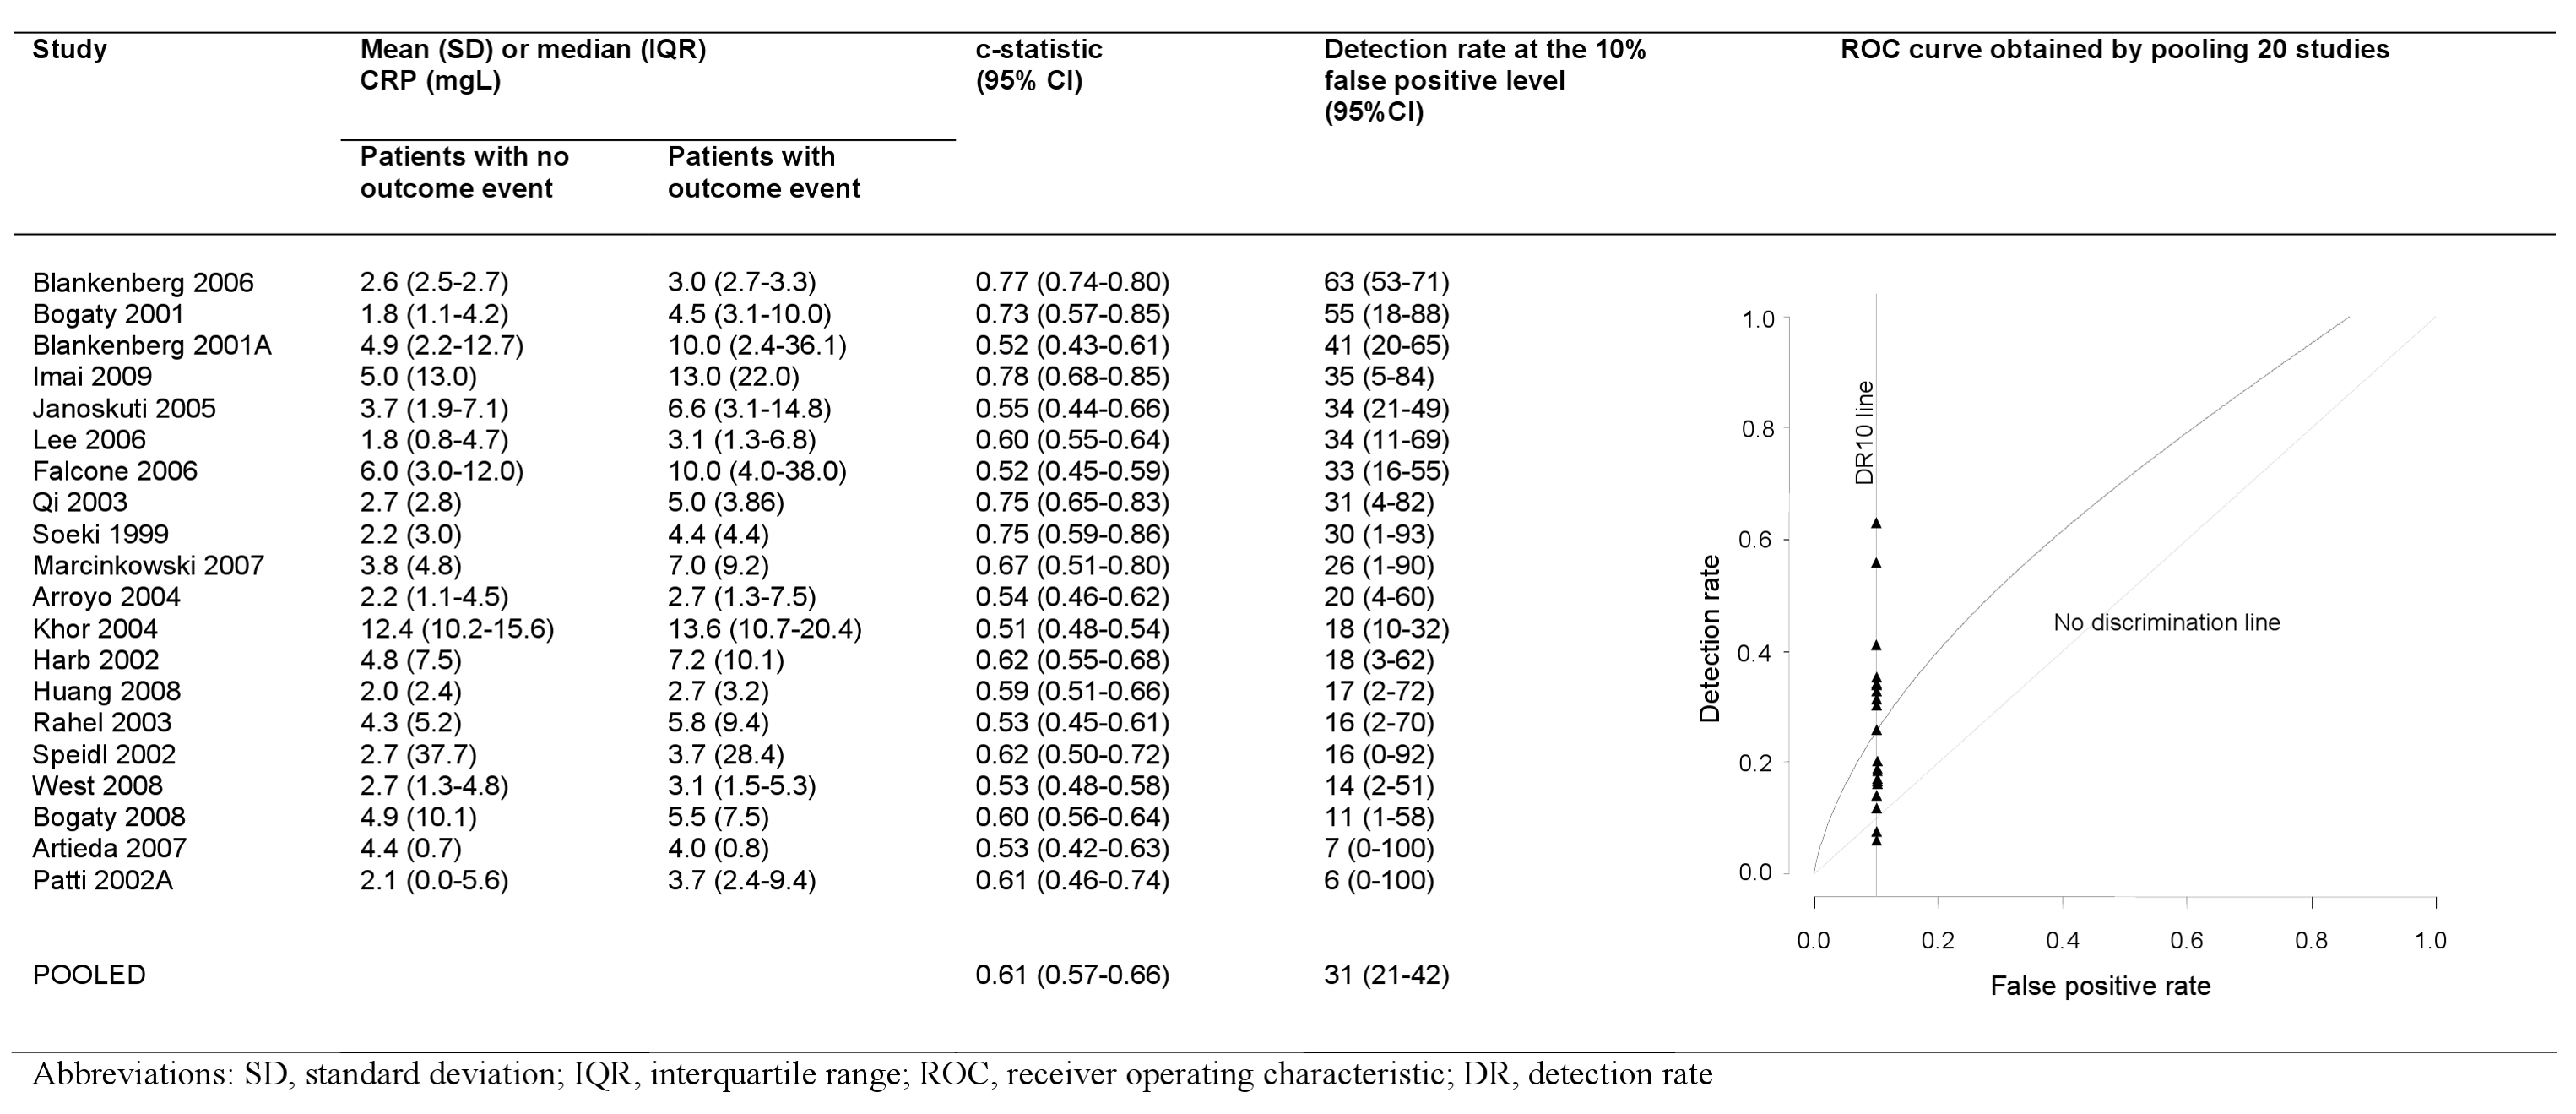 Detection rates at 10% false positive rate and c-statistic for individual studies, and pooled ROC curve.